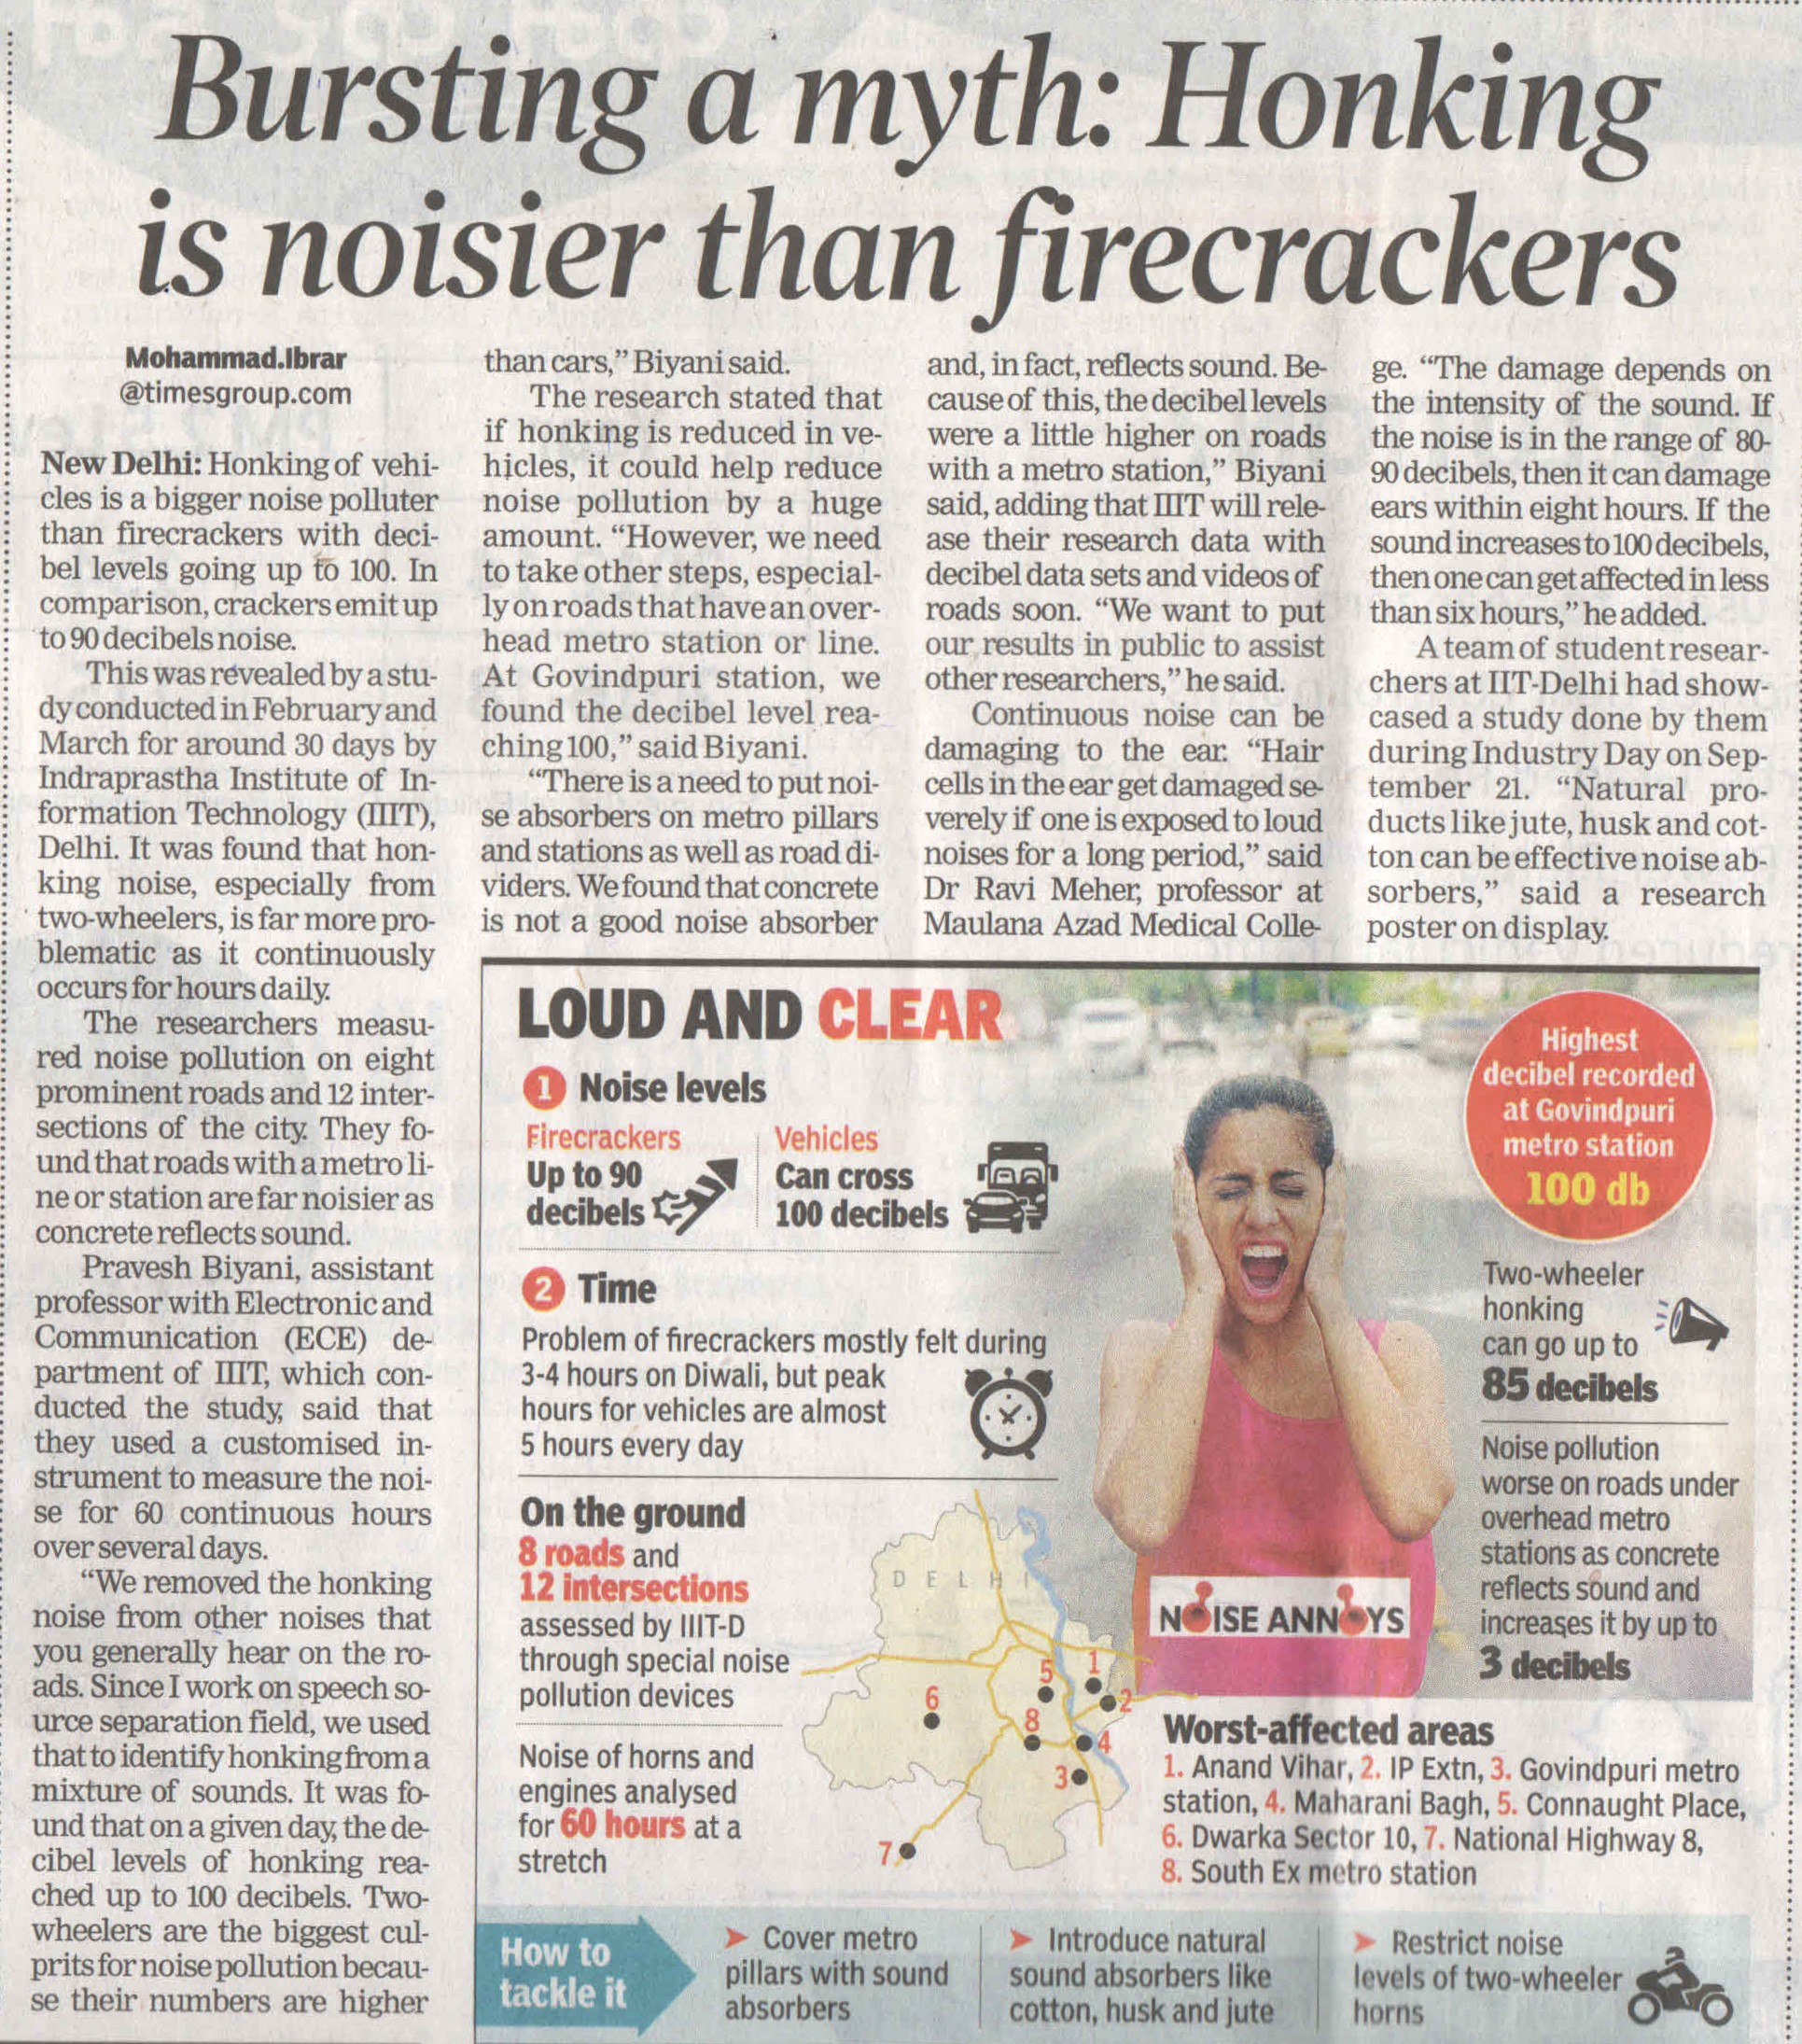 Bursting a myth: Honking is noisier than firecrackers